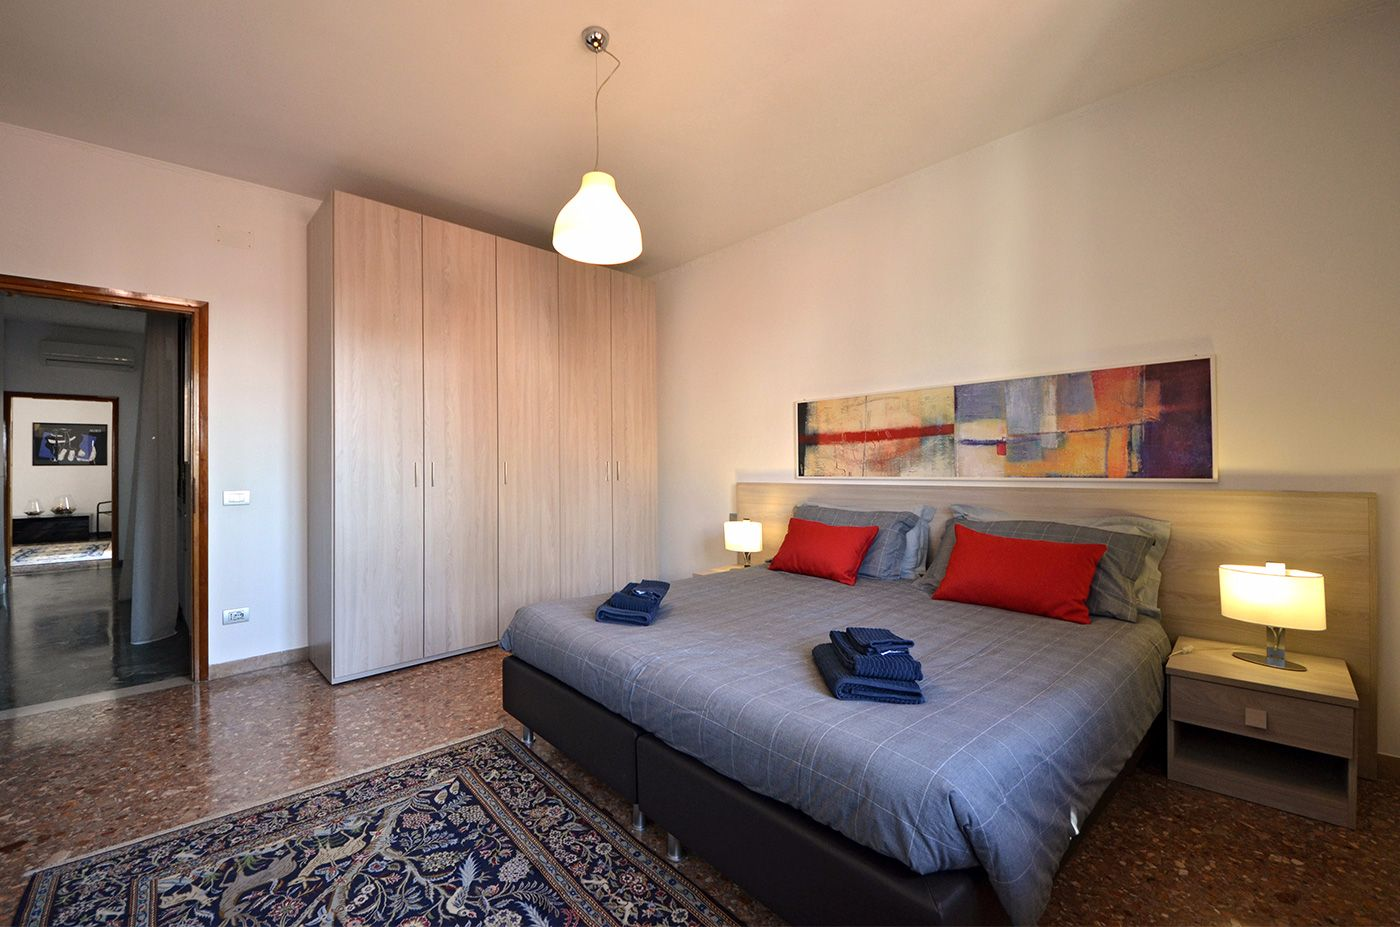 second bedroom, it can be used as double or twin